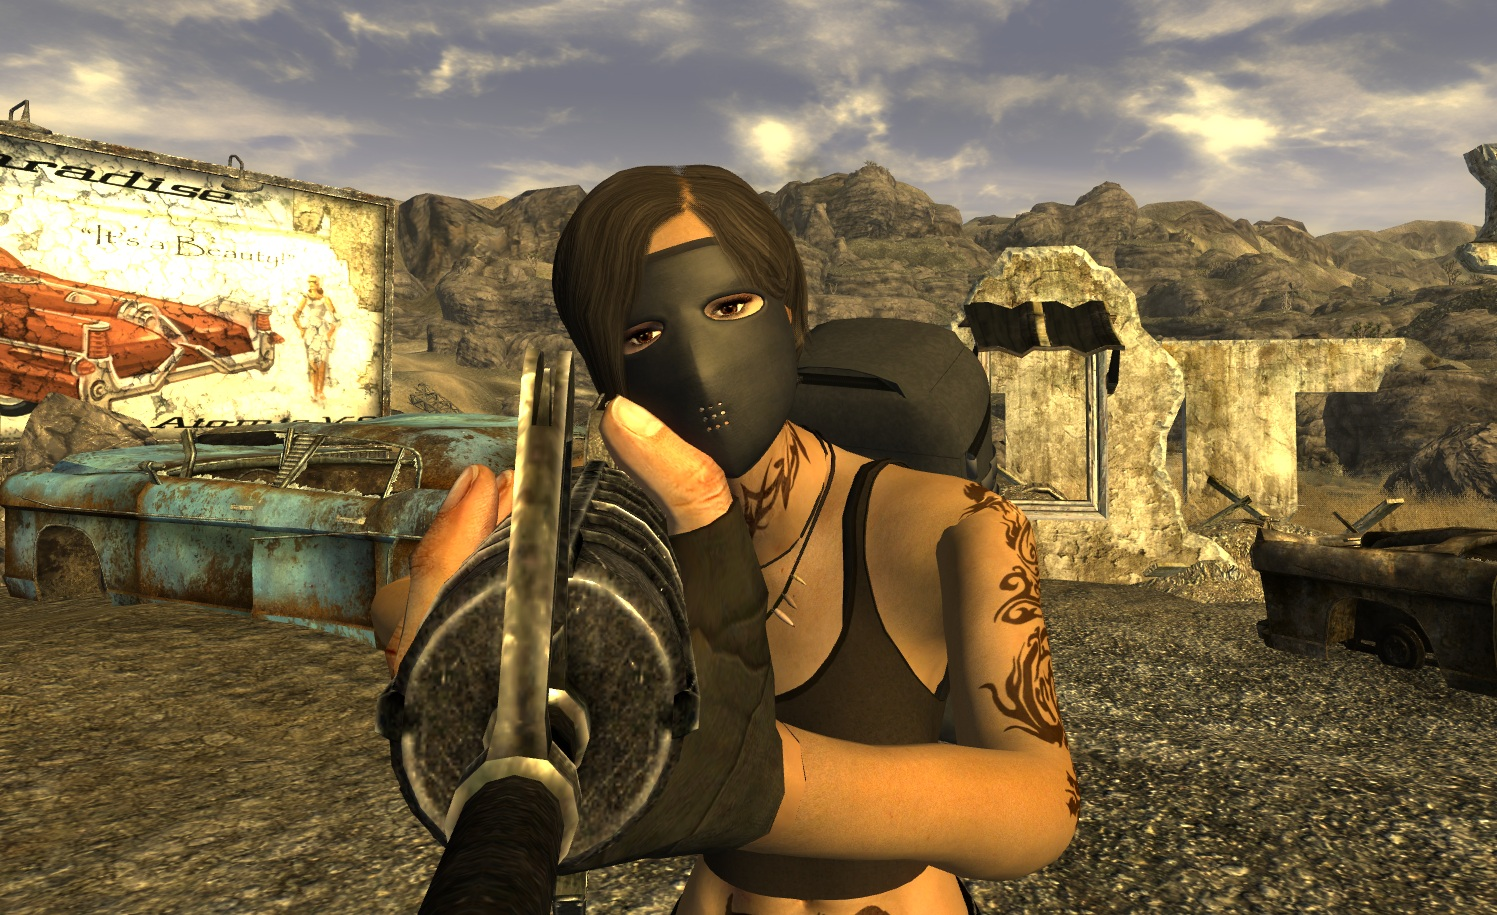 ballistic face mask at fallout new vegas mods and community